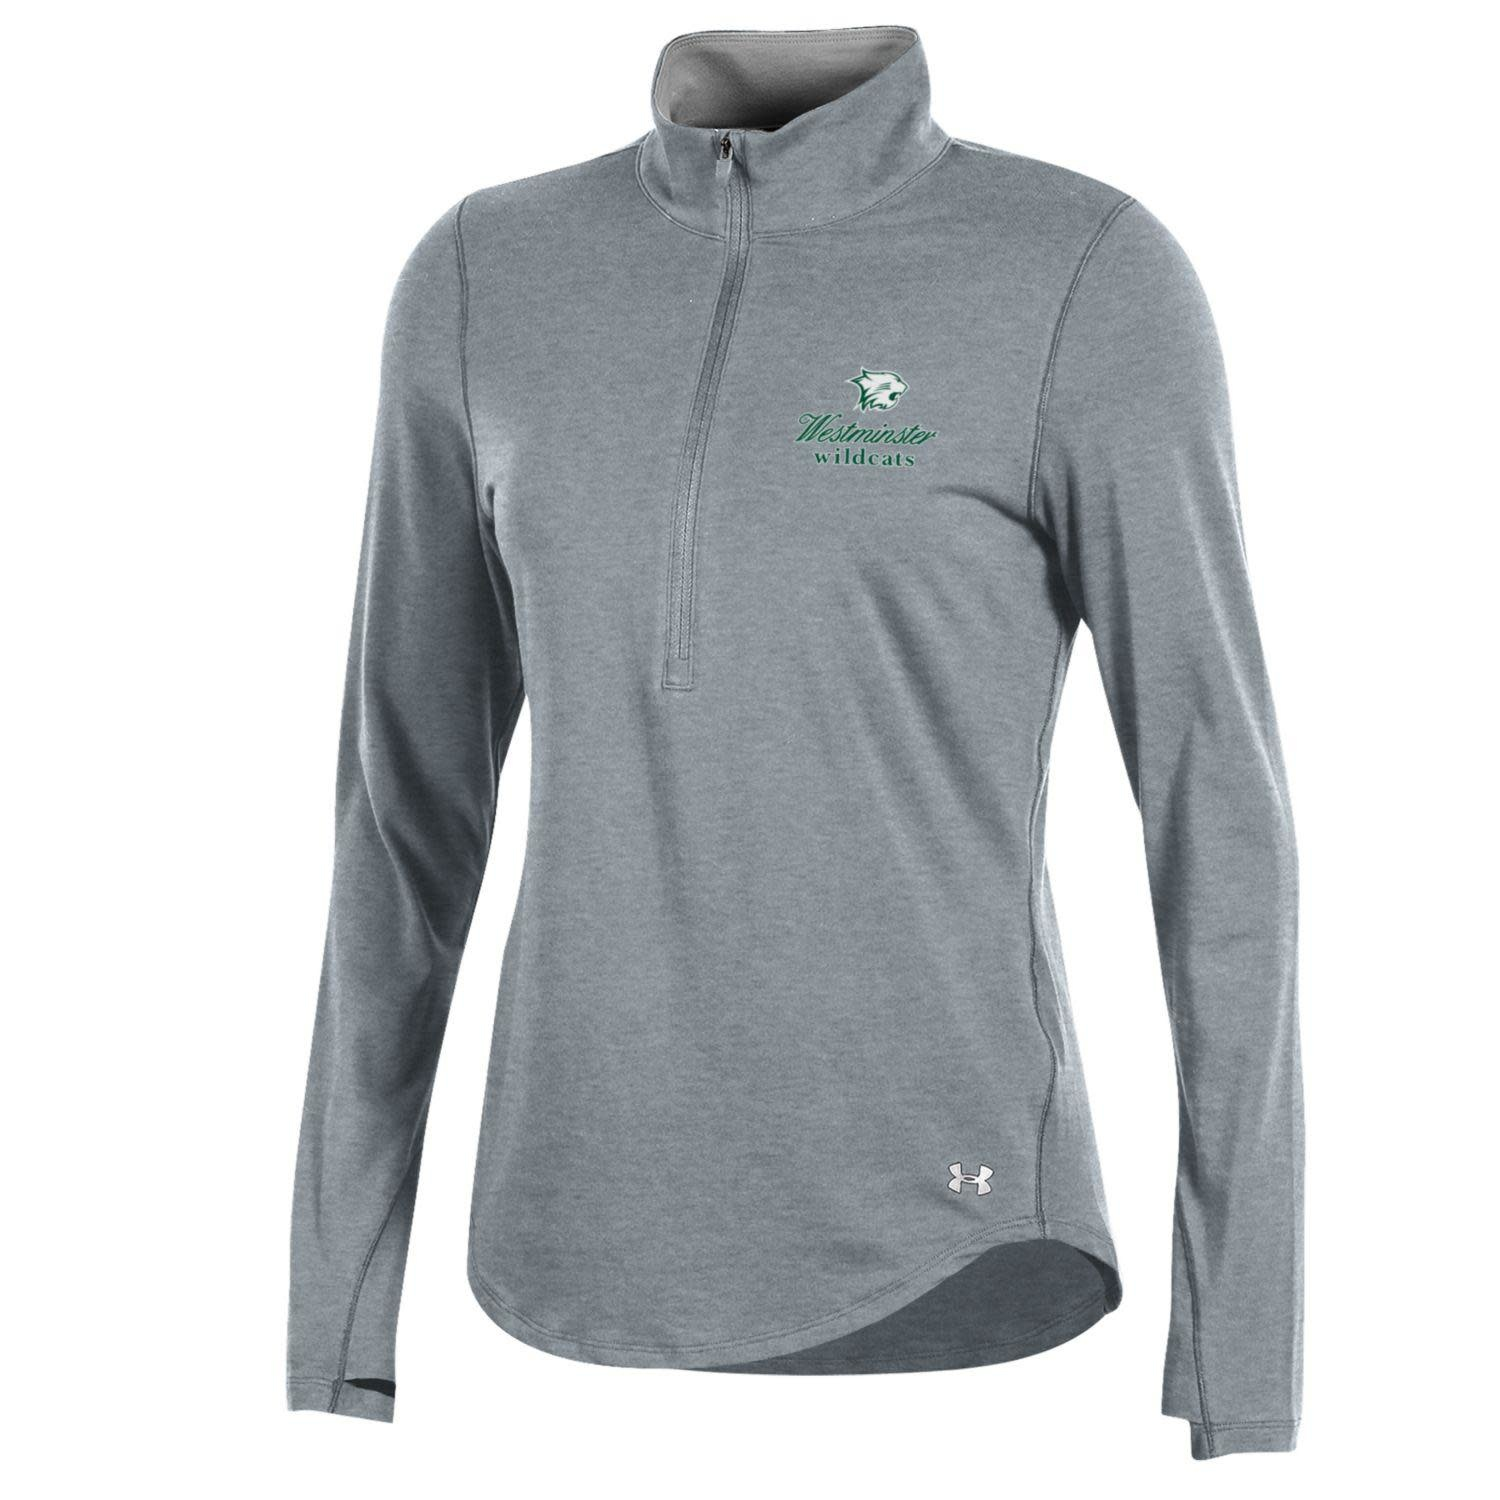 Under Armour Pullover: Women's 1/4 Zip Charged Cotton